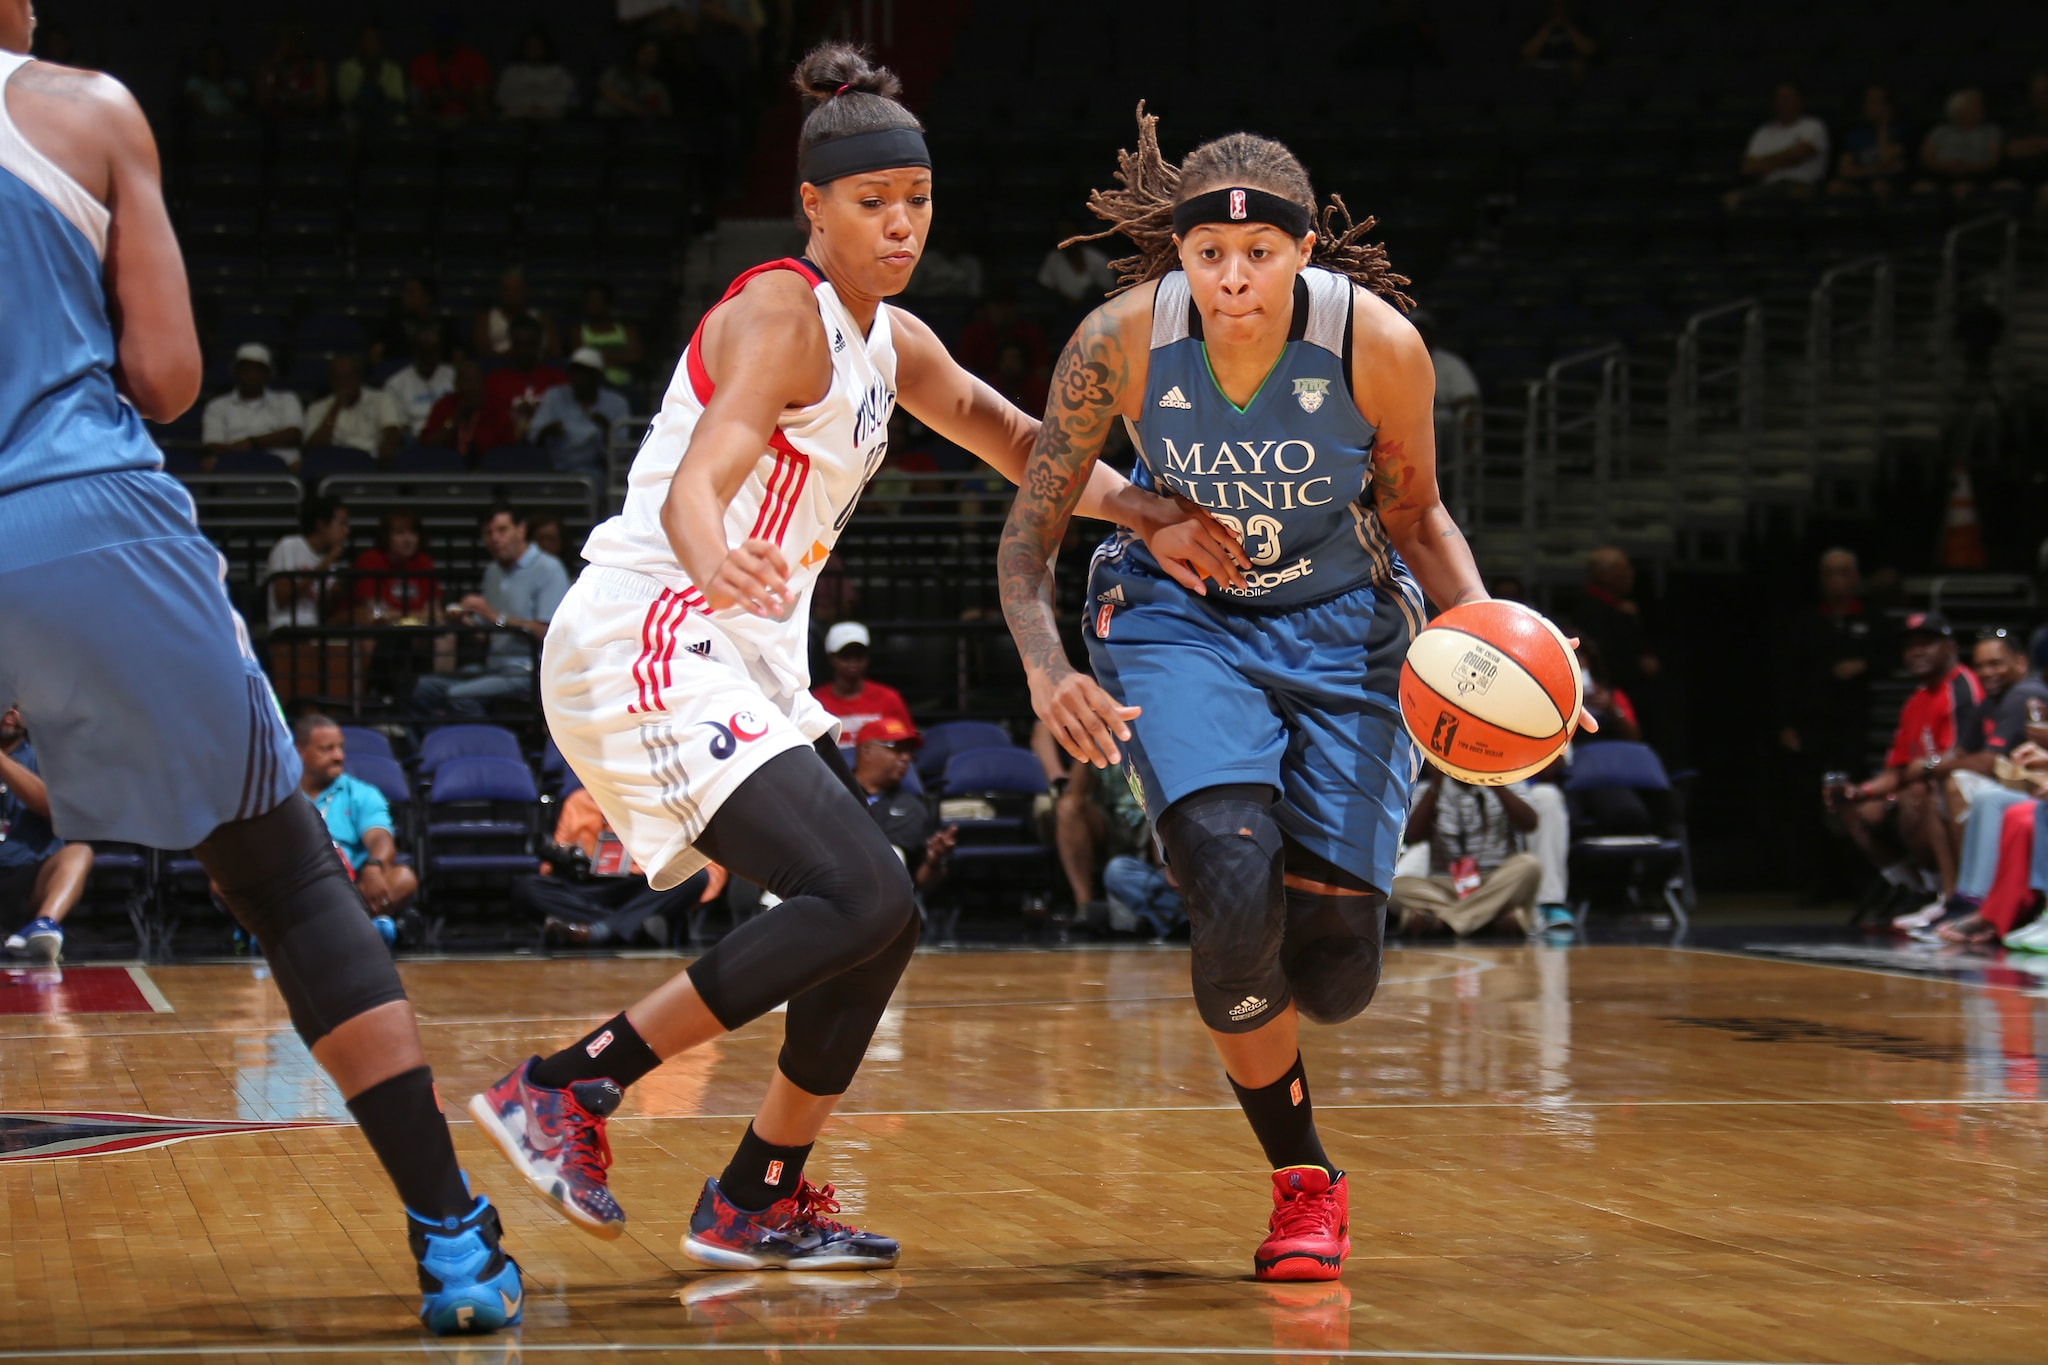 WASHINGTON, DC - AUGUST 16:  Seimone Augustus #33 of the Minnesota Lynx drives to the basket against the Washington Mystics on August 16, 2015 at the Verizon Center in Washington, DC. NOTE TO USER: User expressly acknowledges and agrees that, by downloading and or using this Photograph, user is consenting to the terms and conditions of the Getty Images License Agreement. Mandatory Copyright Notice: Copyright 2015 NBAE (Photo by Ned Dishman/NBAE via Getty Images)